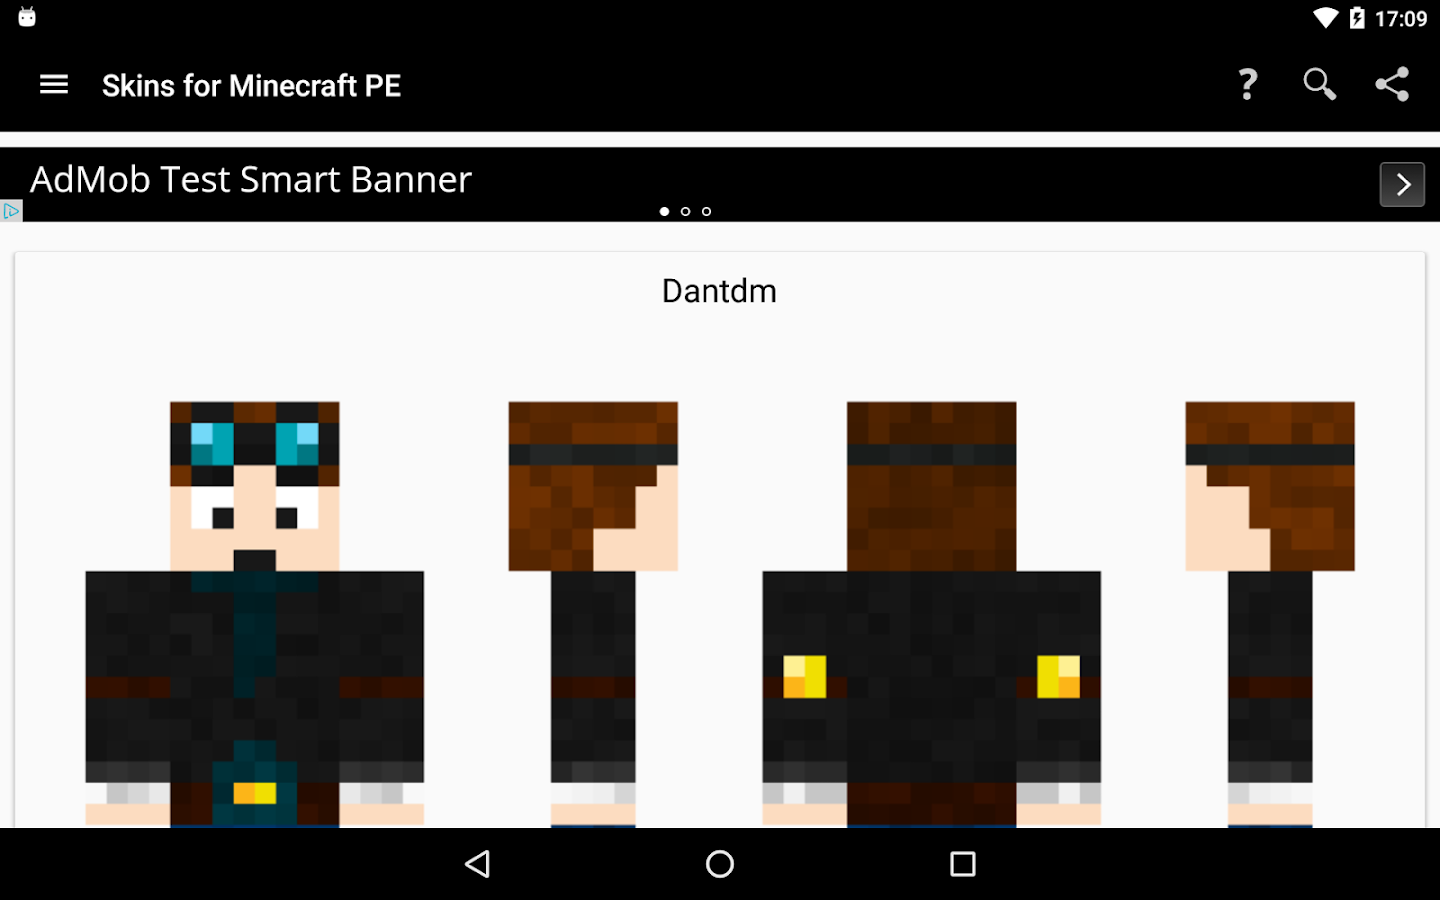 Screenshots of Skins for Minecraft PE for iPhone